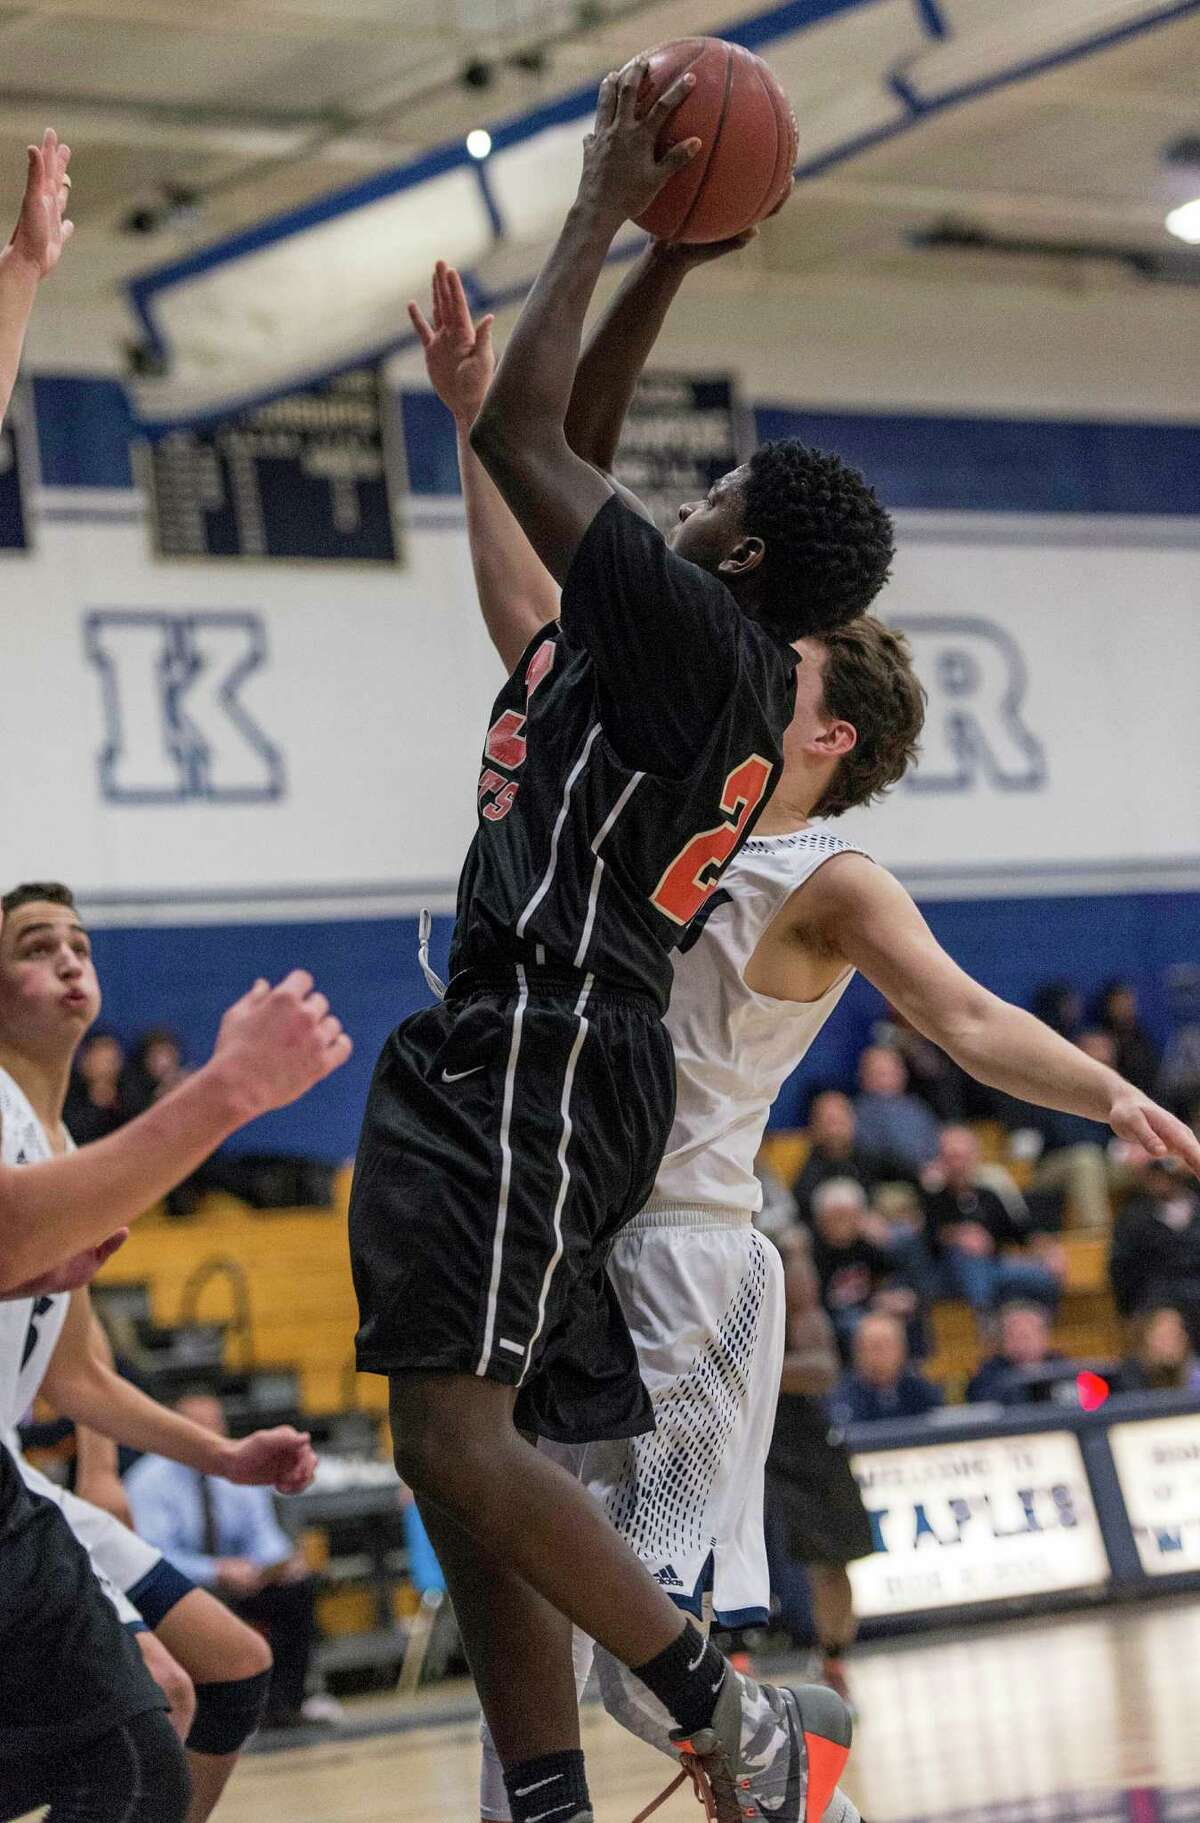 Stamford High School against Staples High School during a boys basketball game played at Staples High School, Westport, CT on Friday, January 8, 2016.